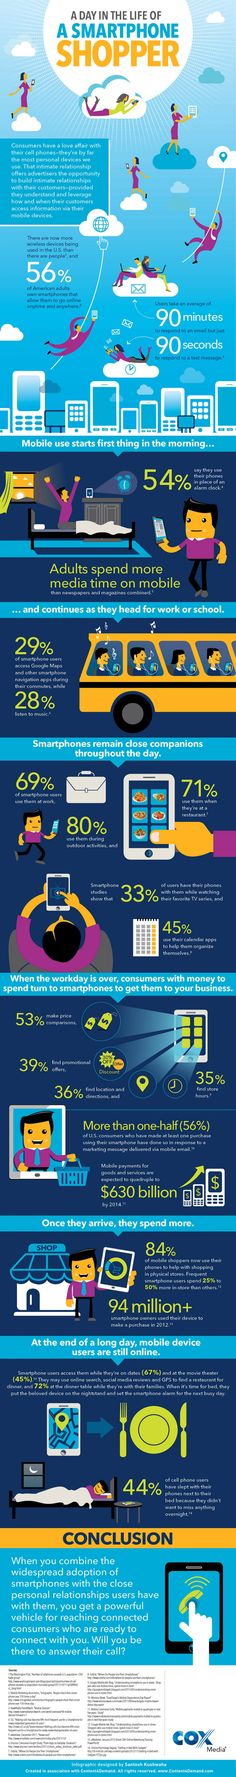 A Day in The Life of a Smartphone Shopper